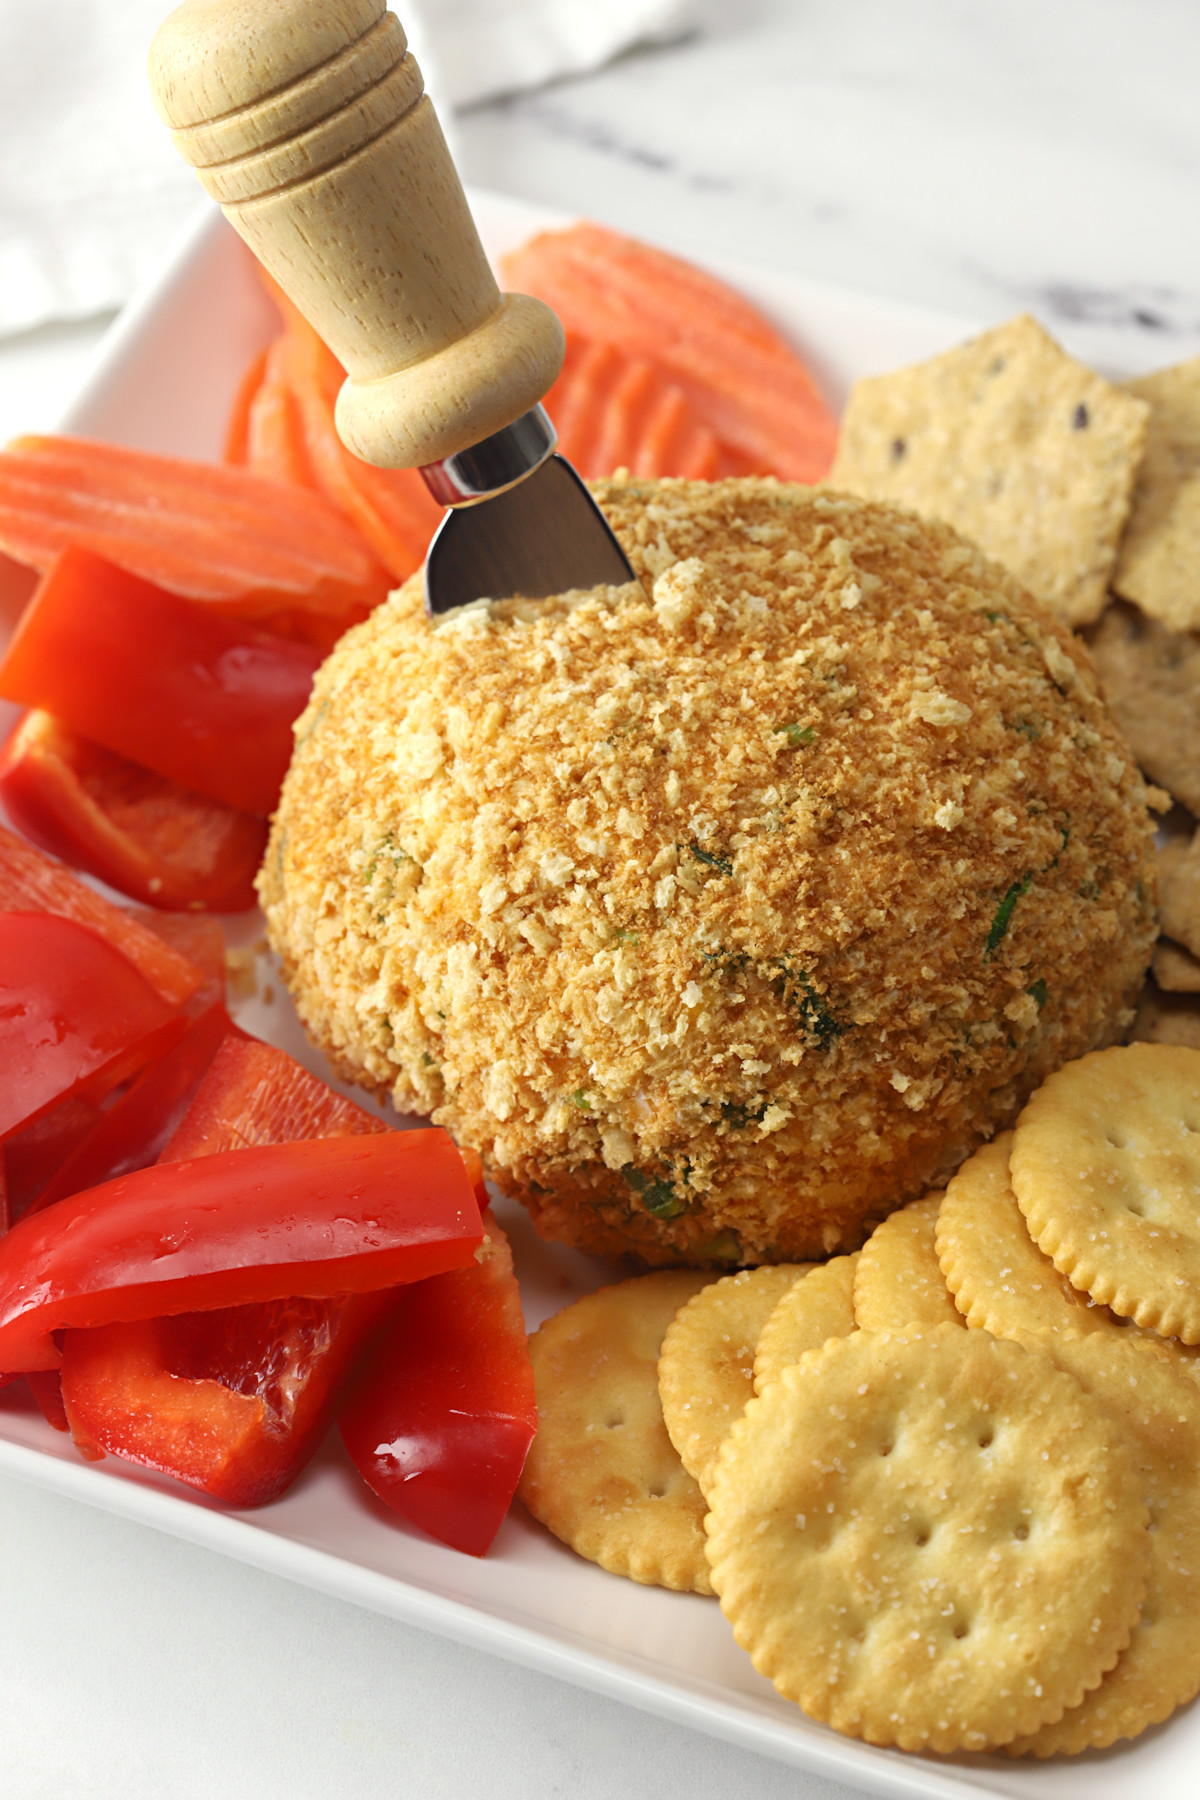 Jalapeño cheese ball with crackers and veggies on a serving plate.